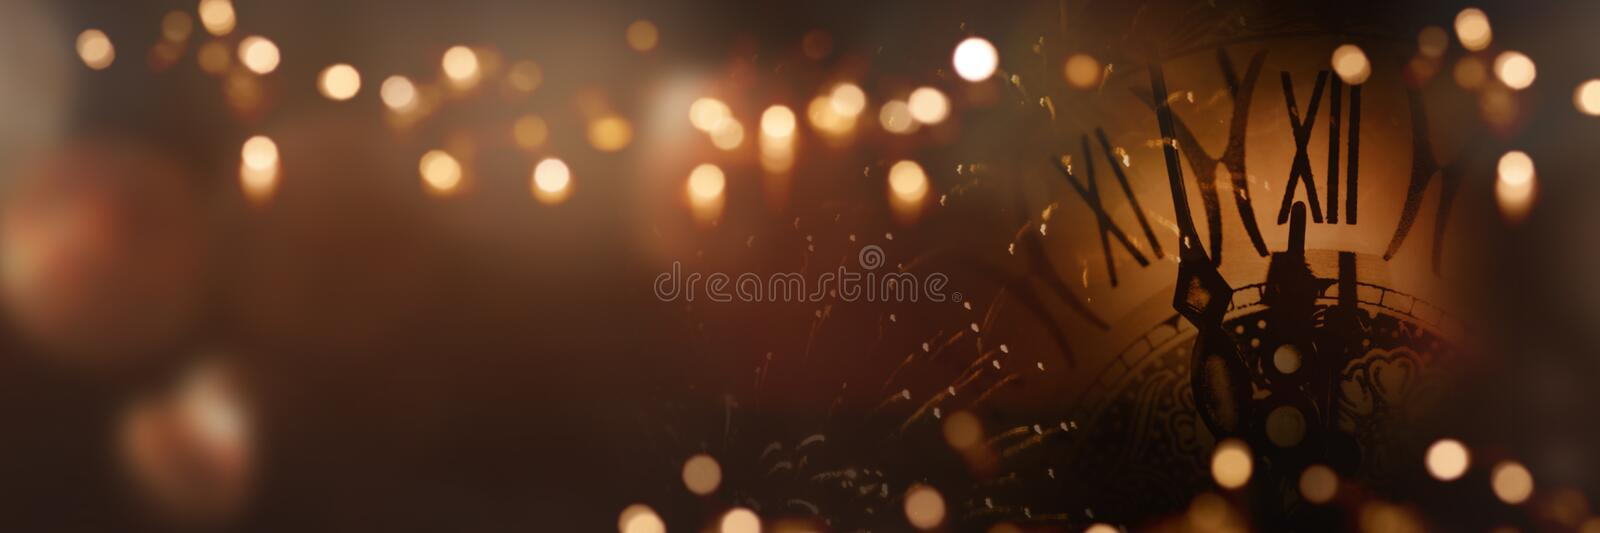 Clock time in the night of new year. With festive golden lights stock image